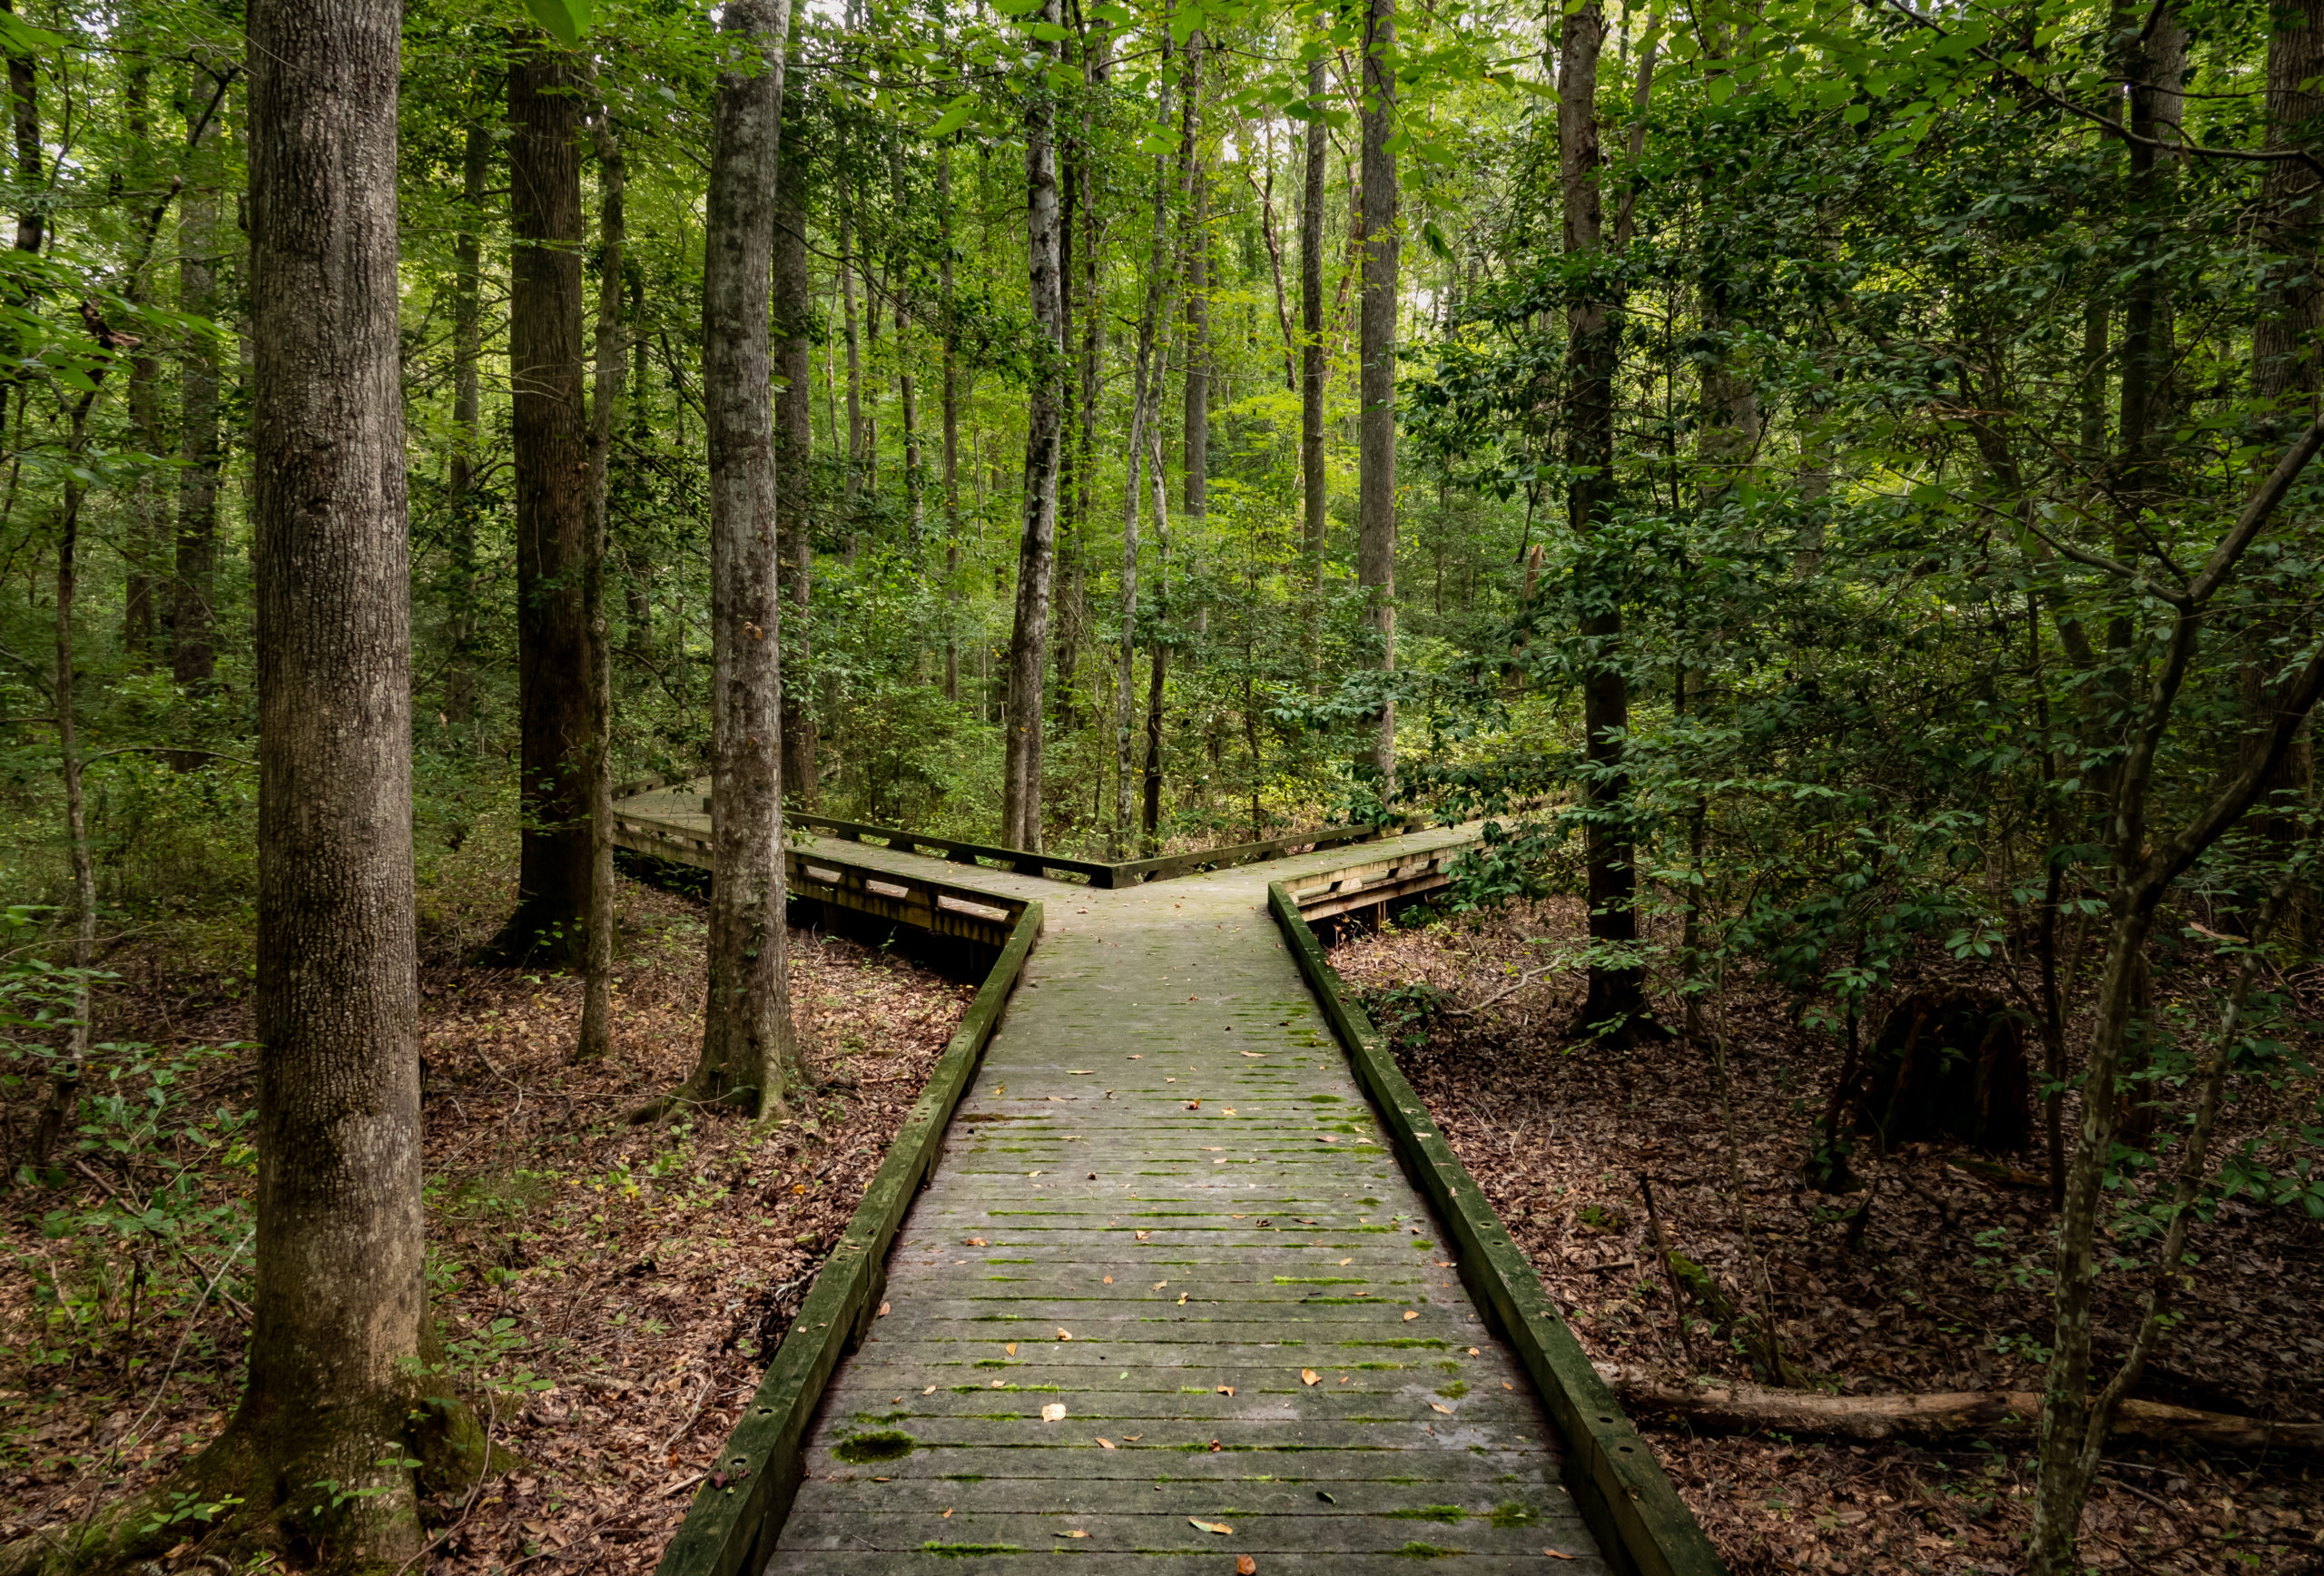 Concept of decision or choice using a wooden boardwalk in dense forest in Great Dismal Swamp